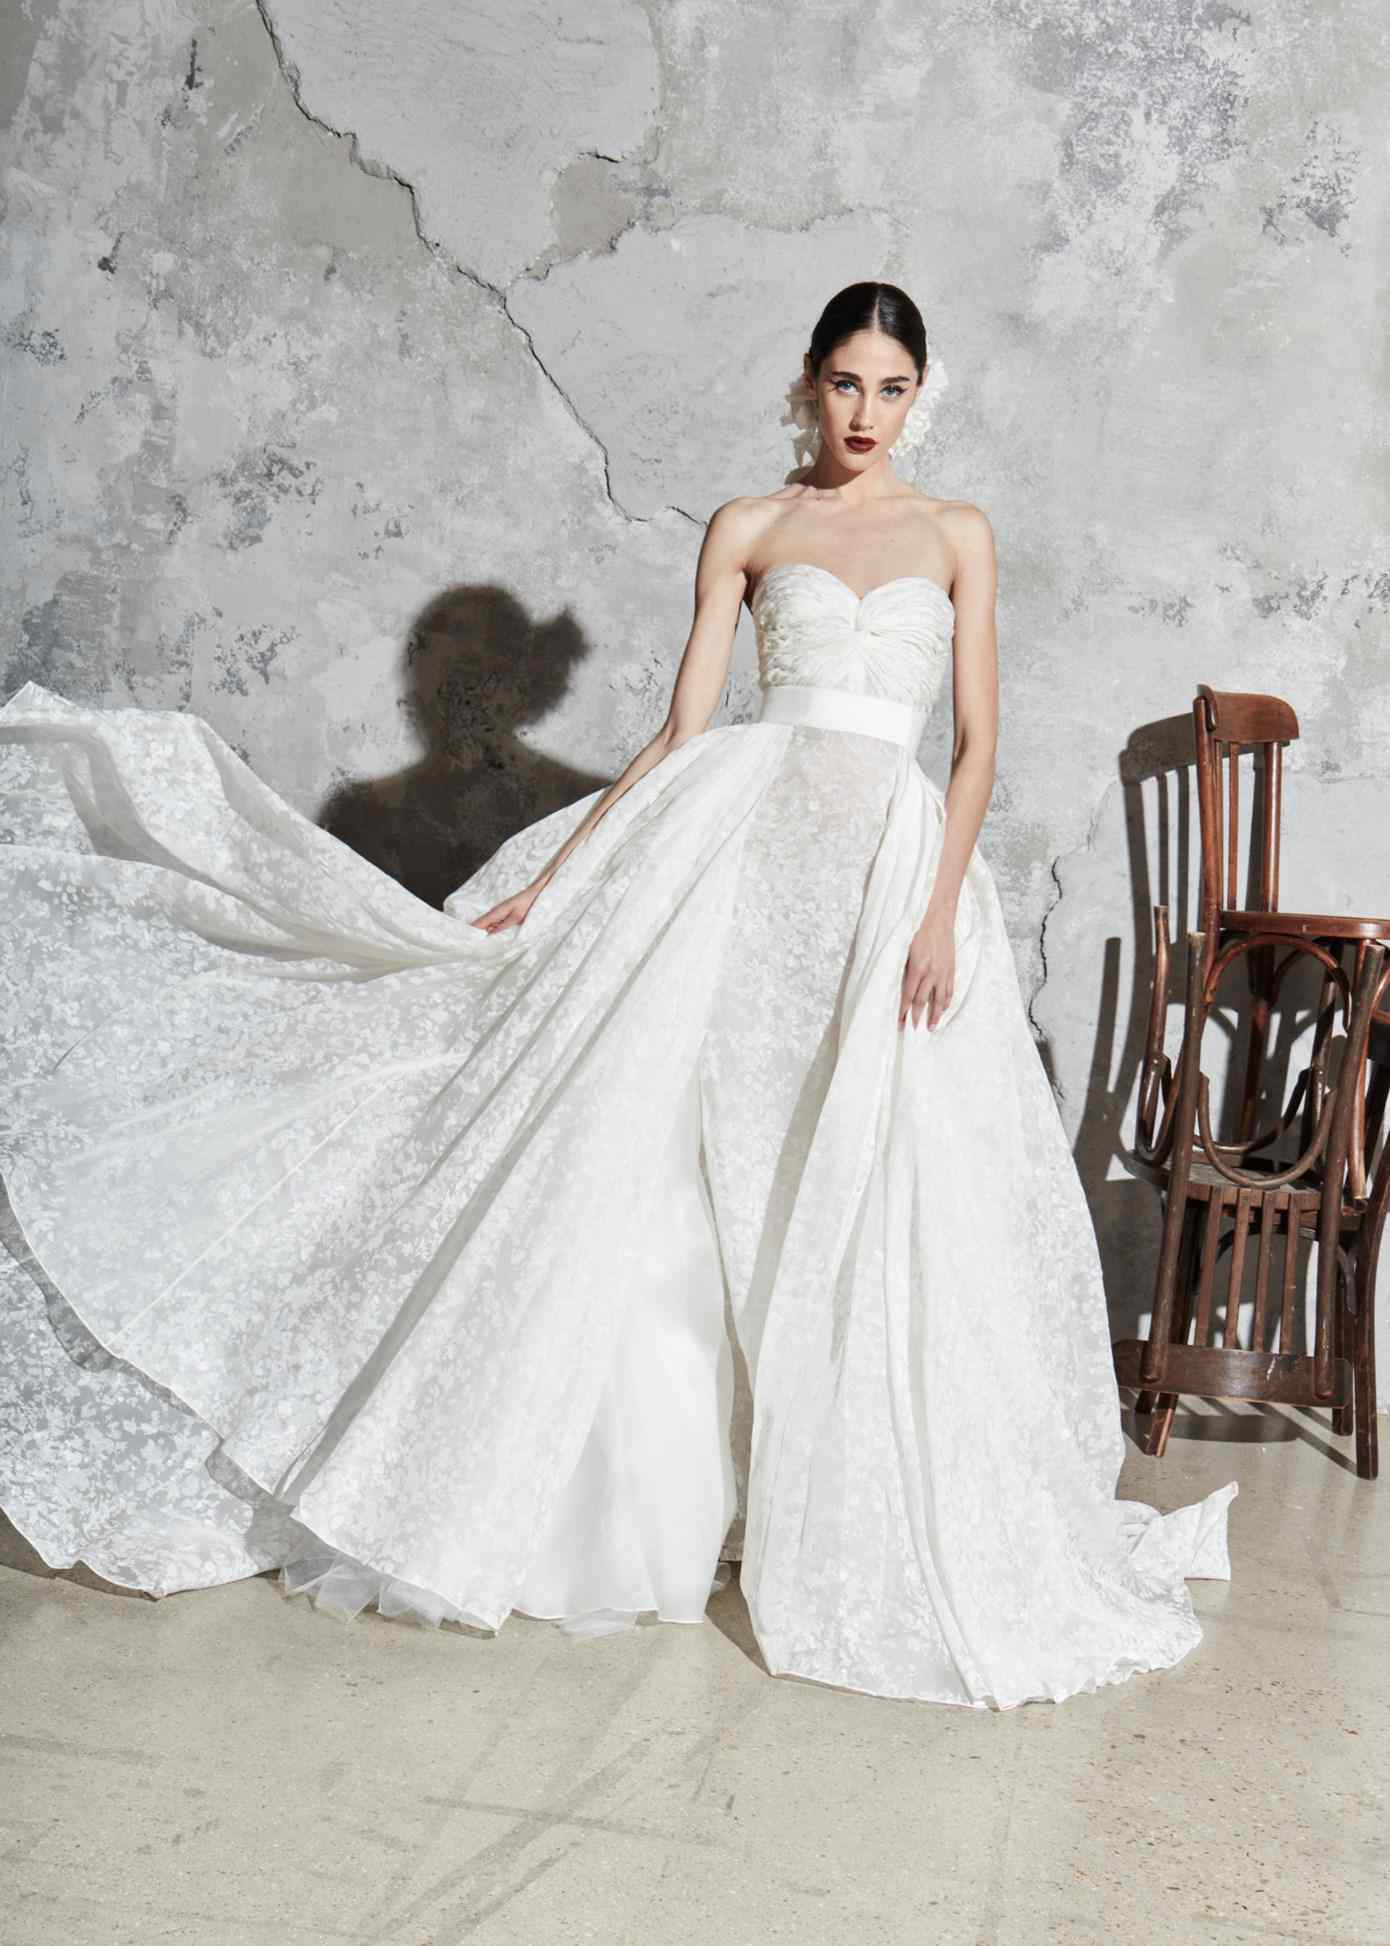 Model in a strapless floral ballgown with a voluminous overskirt and a white waistband